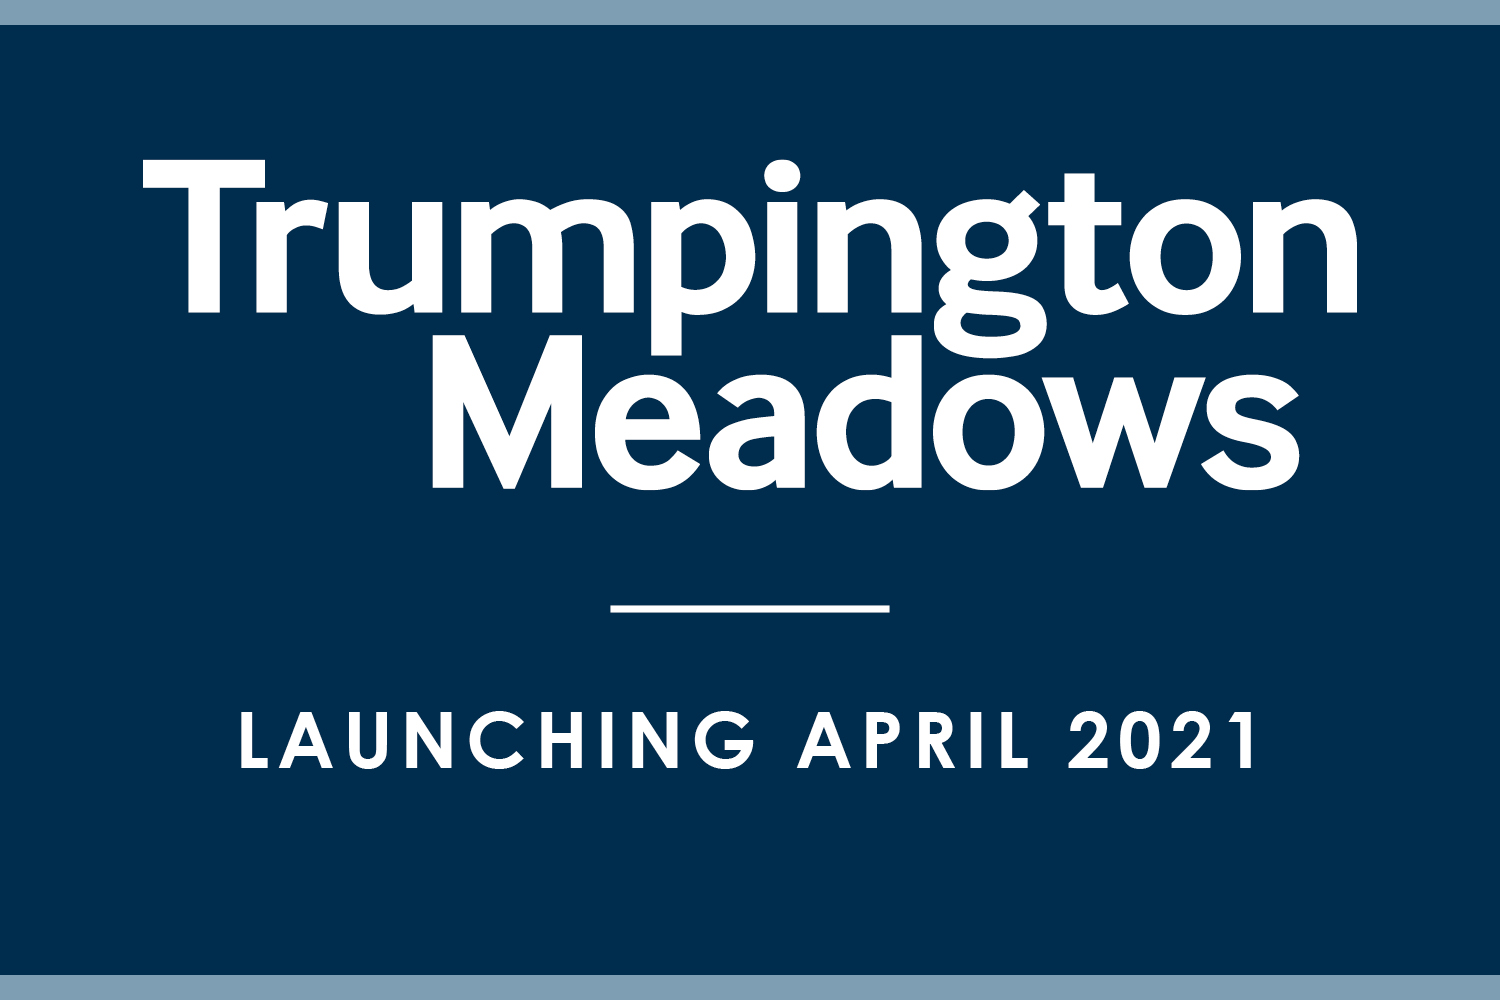 Trumpington Meadows